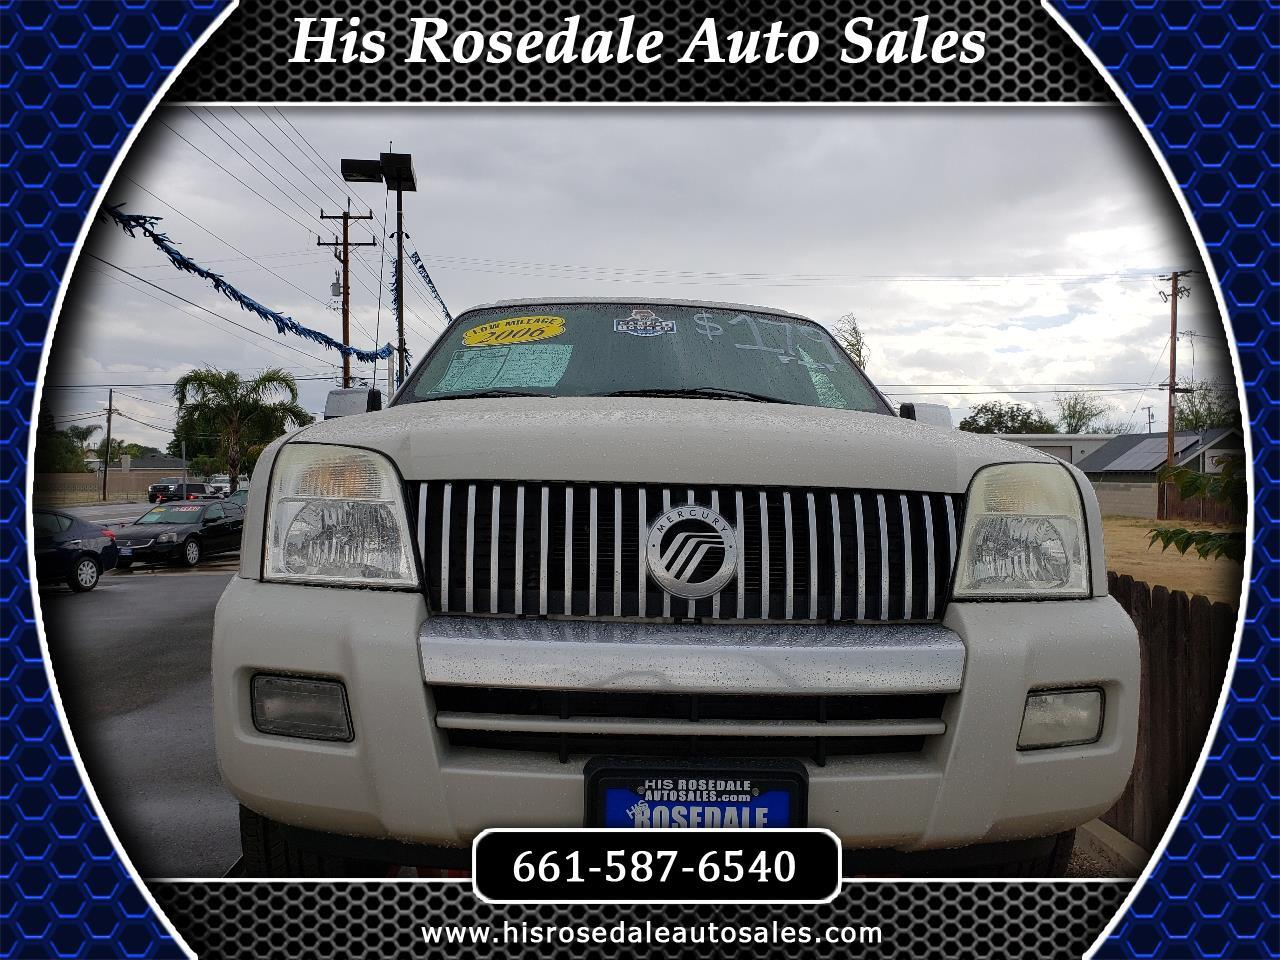 2006 Mercury Mountaineer 4dr Premier w/4.6L